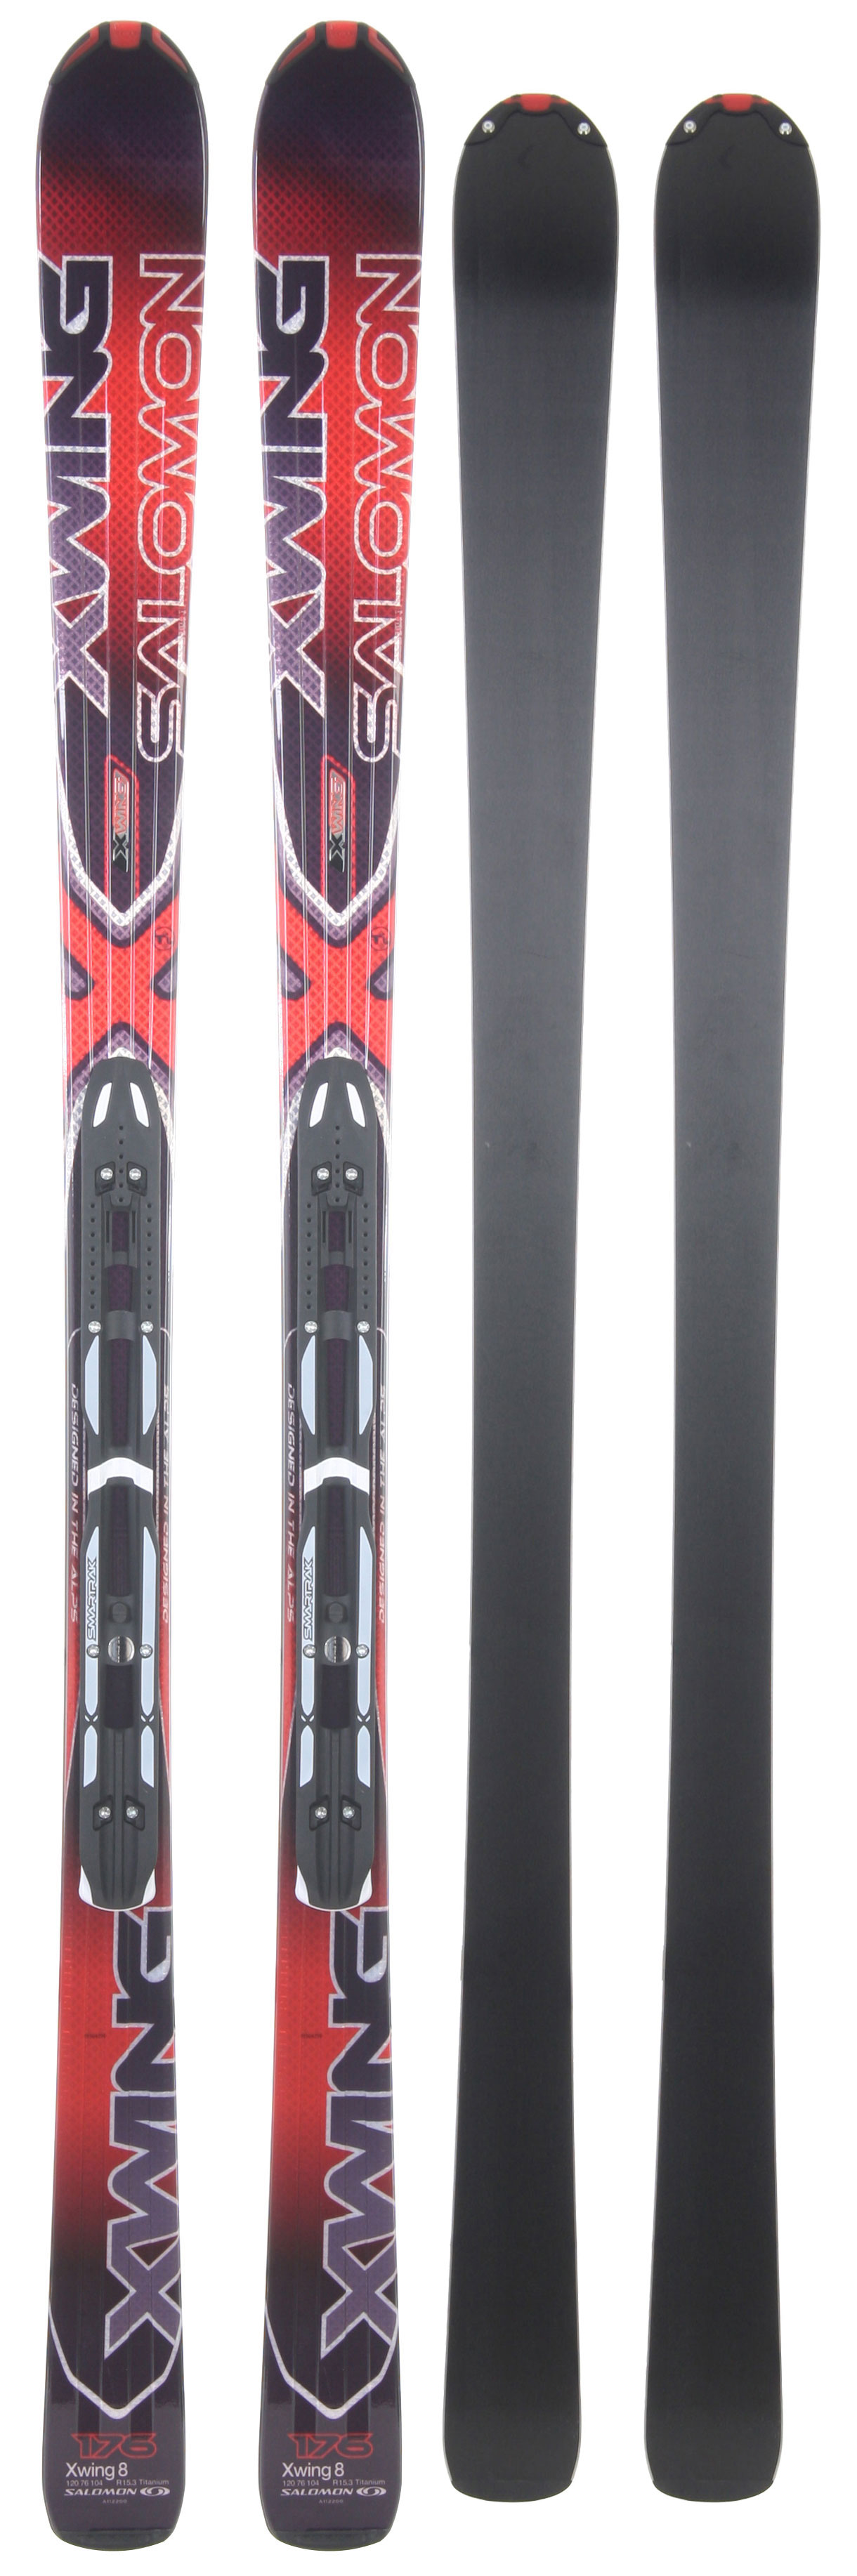 Ski Salomon X-Wing 8 skis are an all-mountain downhill ski built to satisfy the needs of intermediate and advanced riders. With a lightweight design, thanks to space frame technology and monocoque lite single-wall construction, and an over-shaped sidecut X-Wings are able to handle an terrain. As you shred through deep power or cascade down steep trail you can feel confident you will be in control and riding smoothly. The included Z-Concept bindings are also specially designed to enhance the ski experience by increasing the ability to turn and stay in control.Key Features of The Salomon X Wing 8 Skis w/ 711 Bindings: M Chassis 3D Stealth Tip V.R.M. - Variable Radius Management Pulse Pad/+ Oversize Pulse Pad: Elastromer Layer All Along the Edge and/or Along the Whole Front Part of the Ski PTex 2000: High Molecular Denisty Base TI Laminate: A Single Layer pf Titanium Reinforcement for Great Edge Grip. Efficient Energy Transfer and Liveliness Composite: Combination of Fibers Monocoque Lightrak 711 Bindings - $460.95